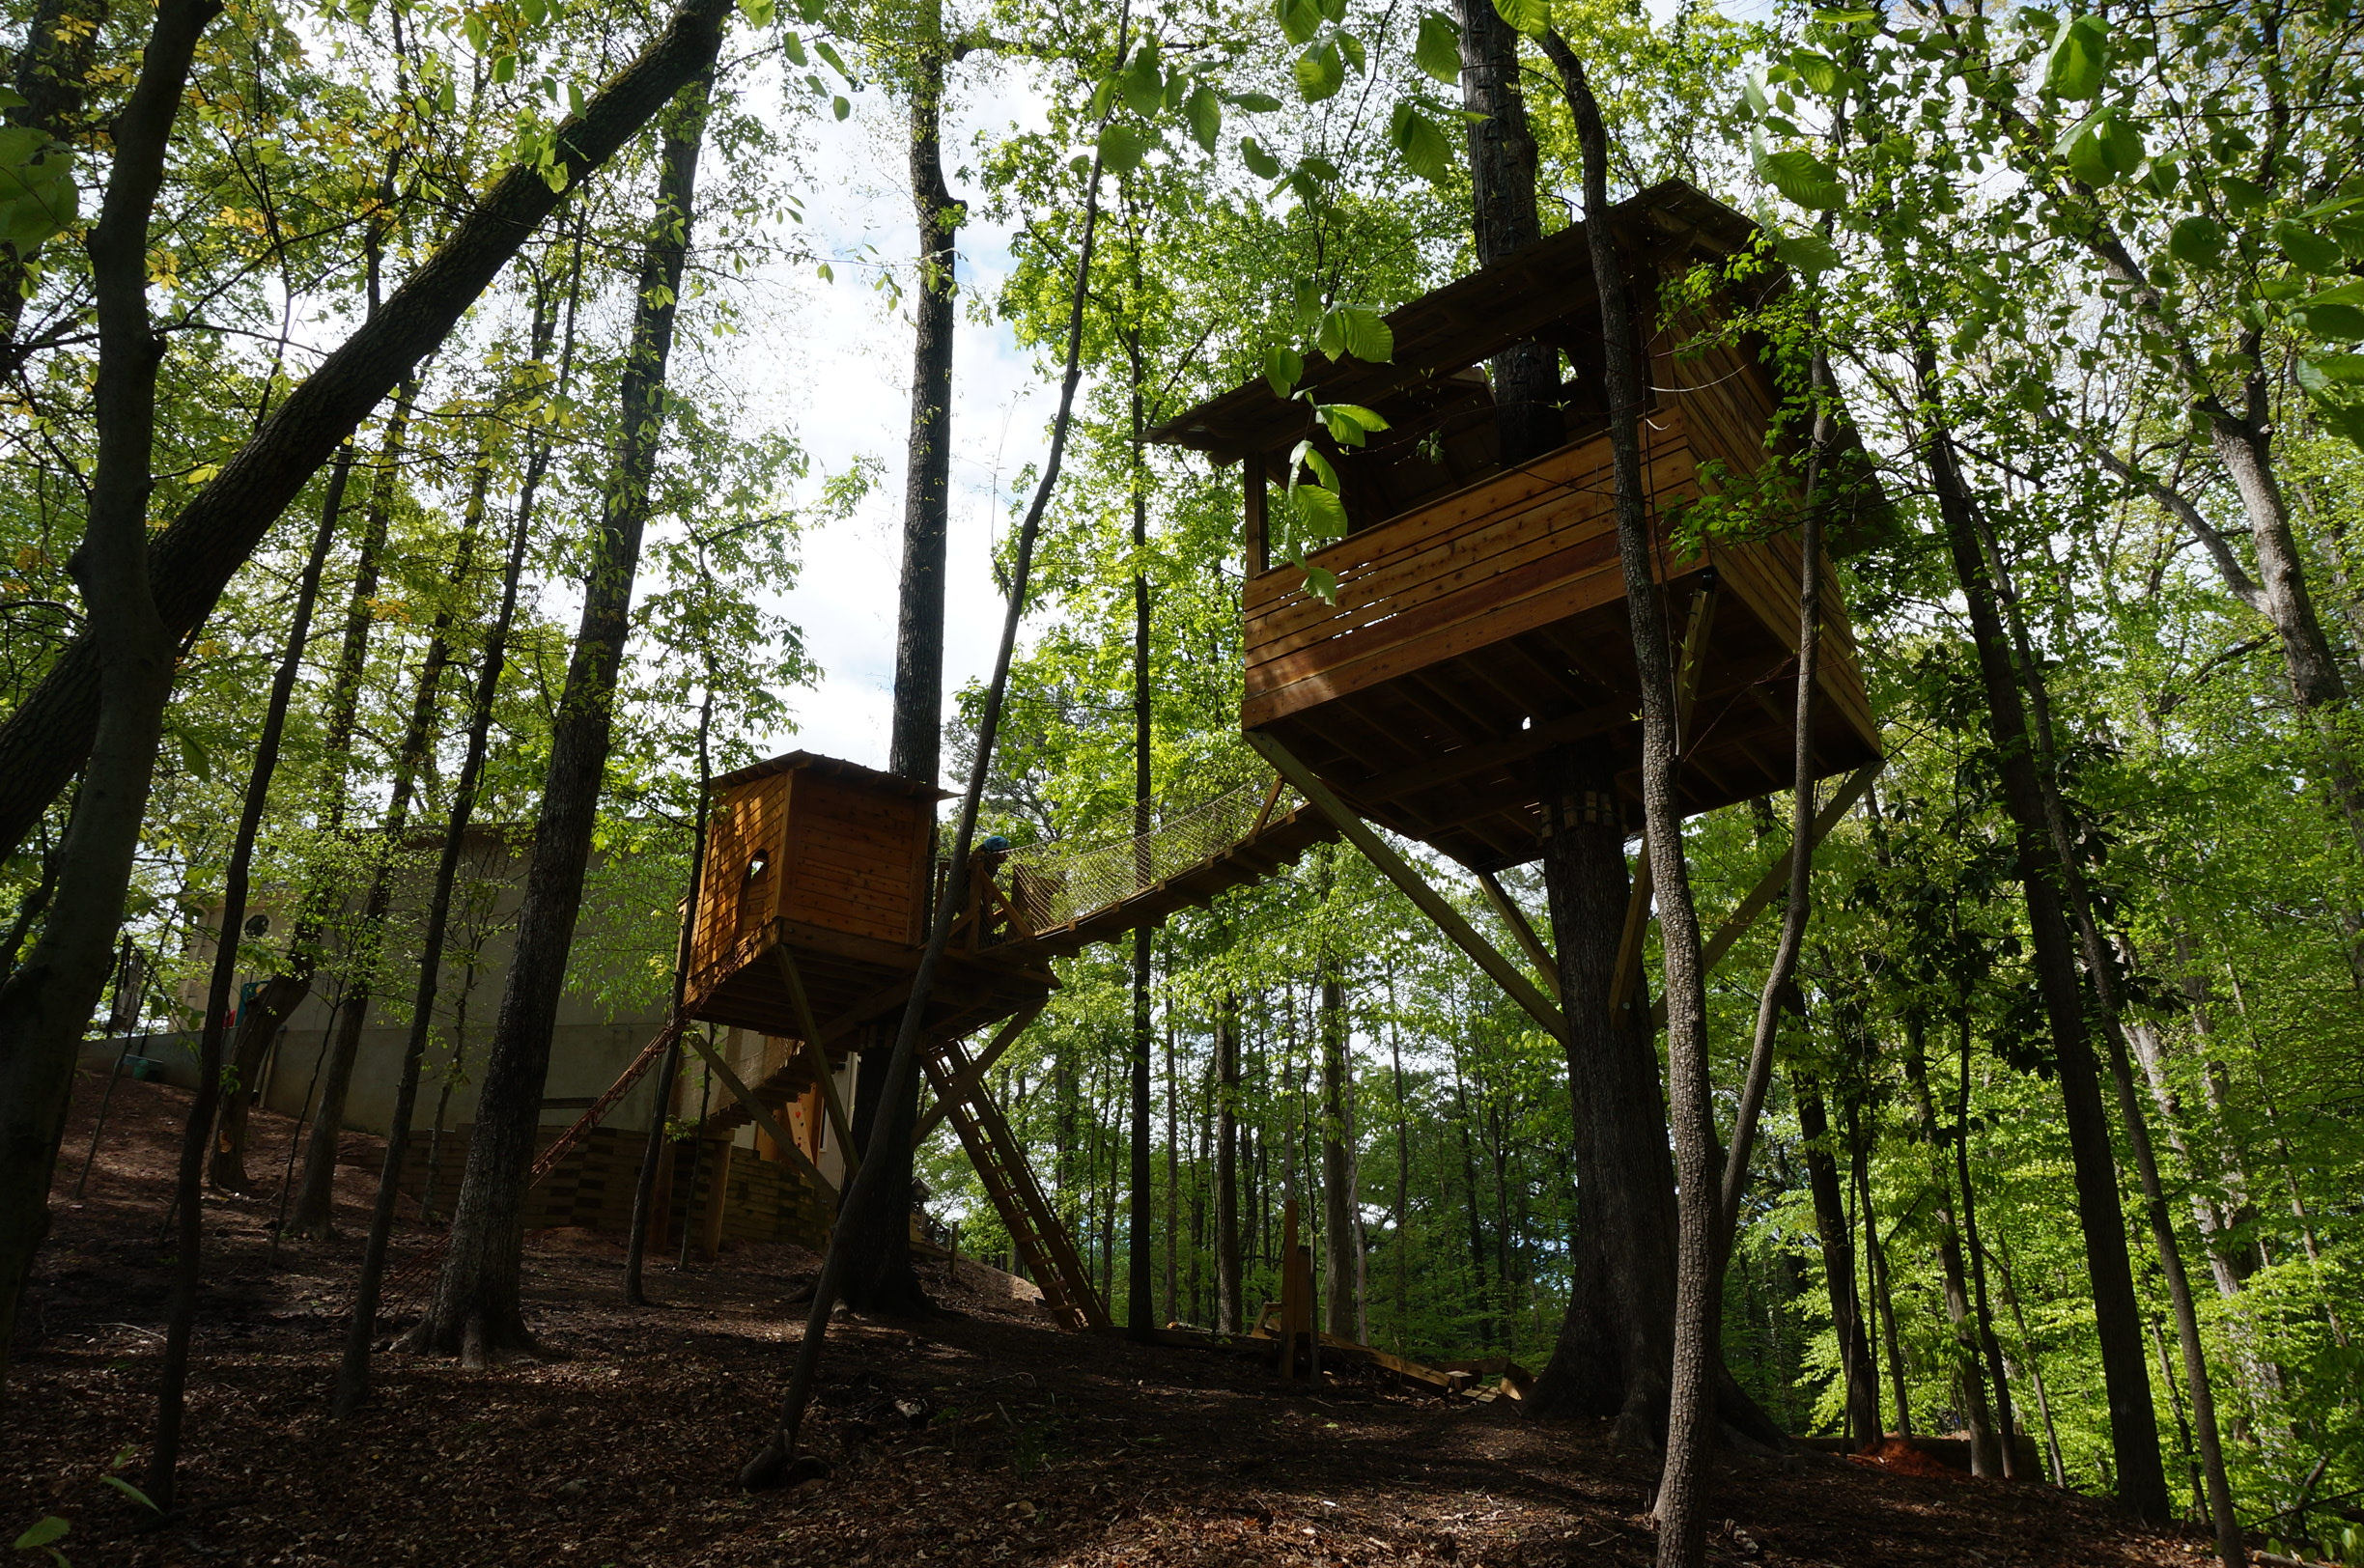 "<strong>Double Dream Treehouse</strong><a href=""/dream-treehouse"">Click Here For More Pictures »</a>"